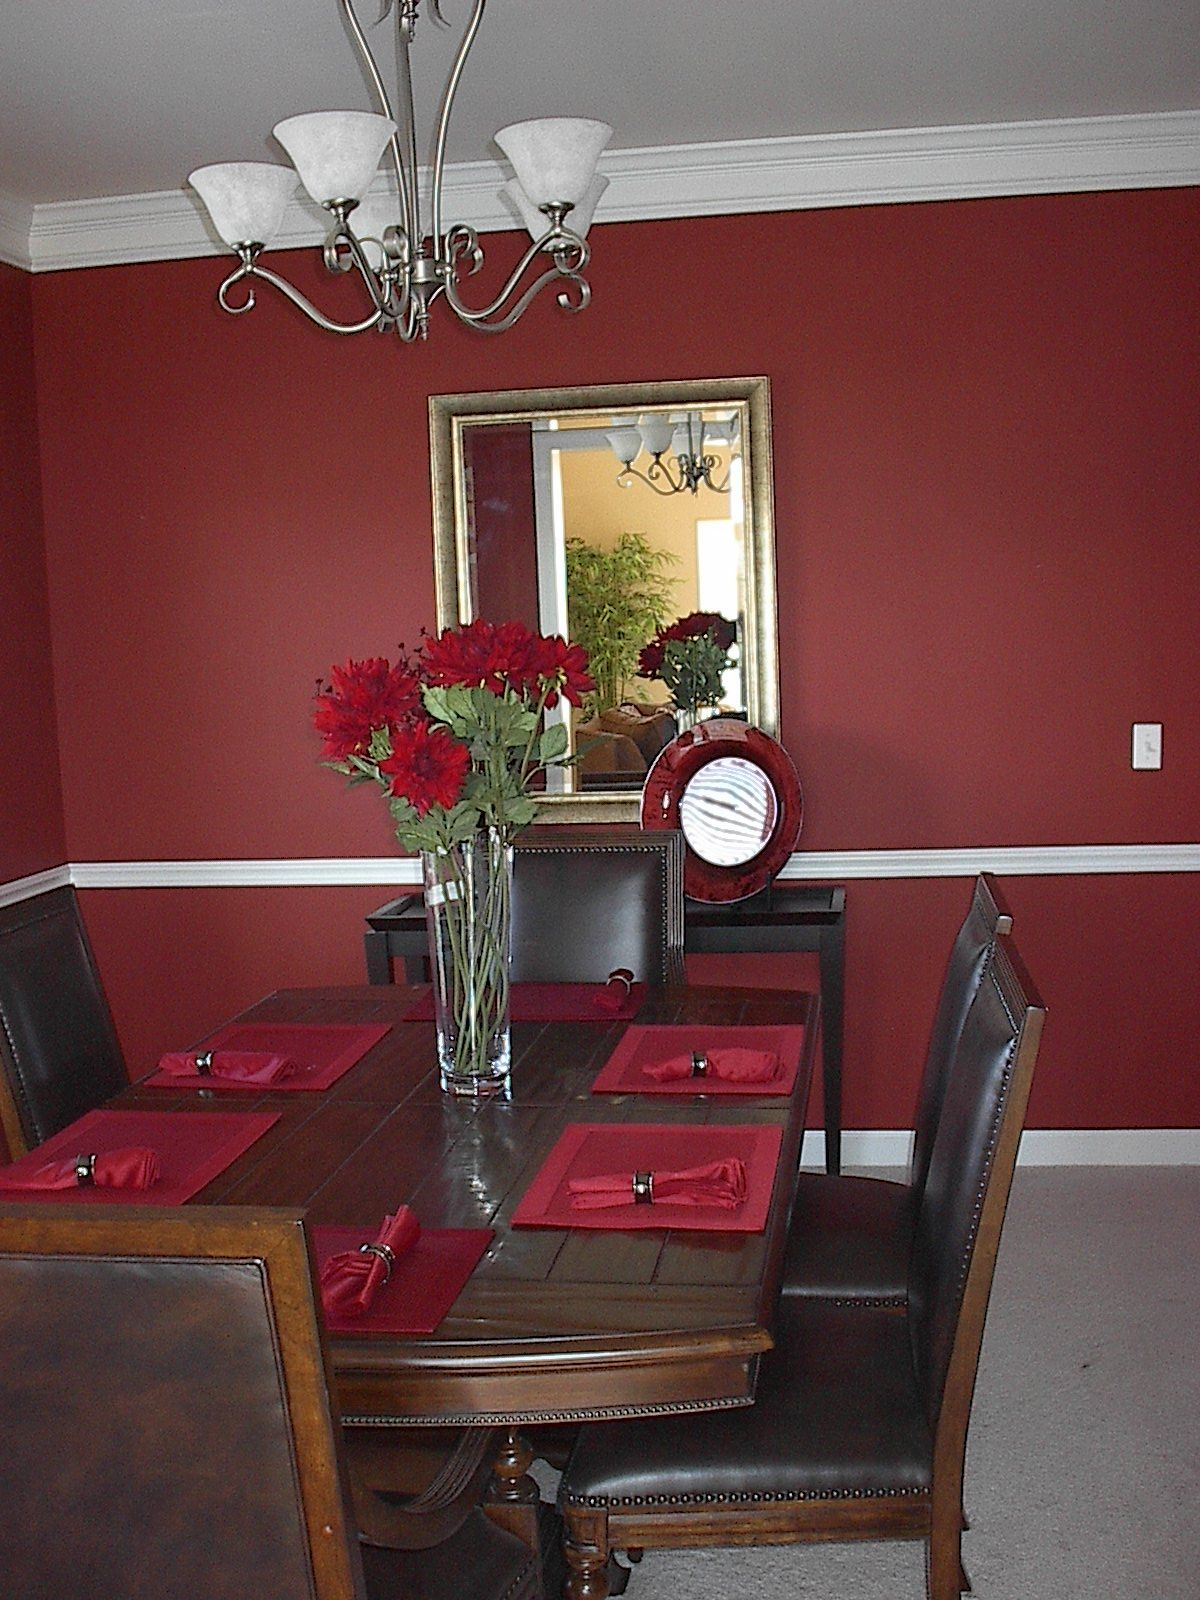 Decorating ideas for a red dining room enricbataller